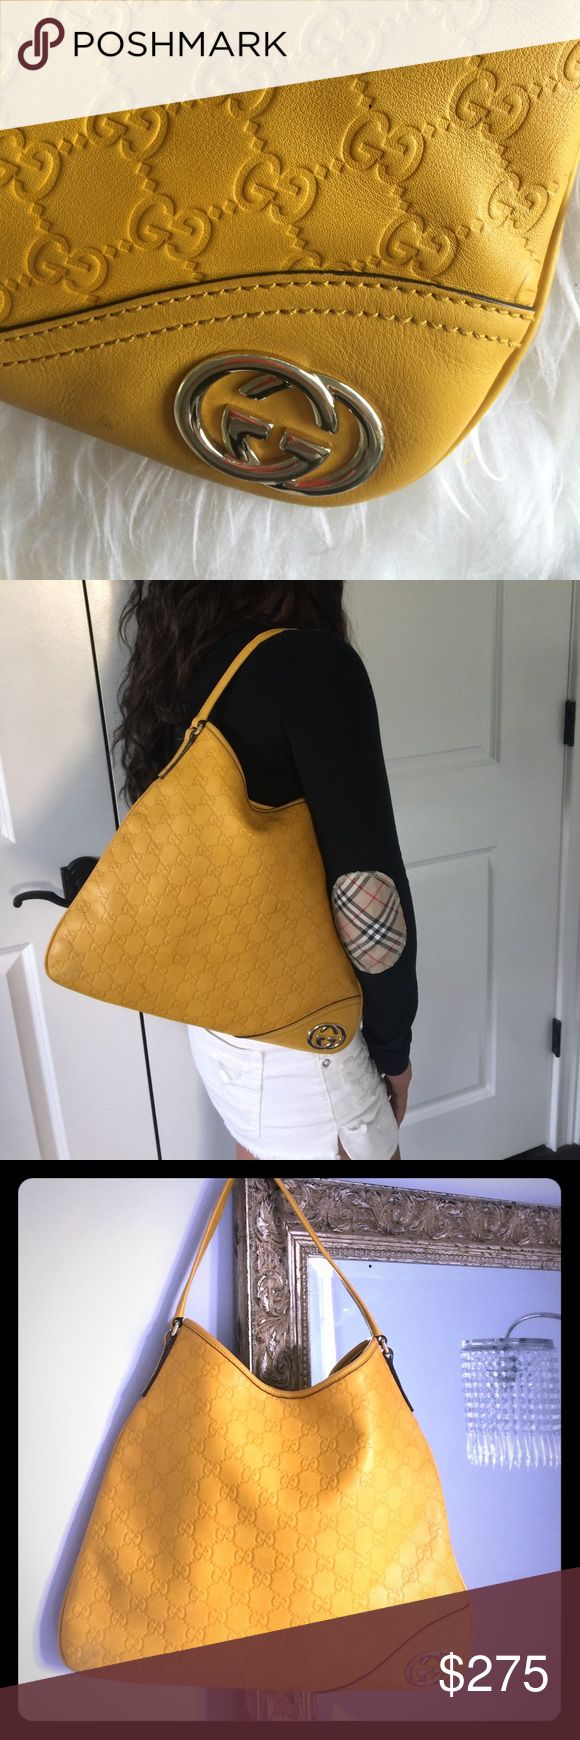 GUCCI LEATHER HOBO BAG 💯 AUTHENTIC Gucci embossed yellow leather hobo bag with snap enclosure.  Not to big not too small. Great bag great condition   💯 AUTHENTIC 💯 AUTHENTIC...AUTHENTIC... Gucci Bags Hobos